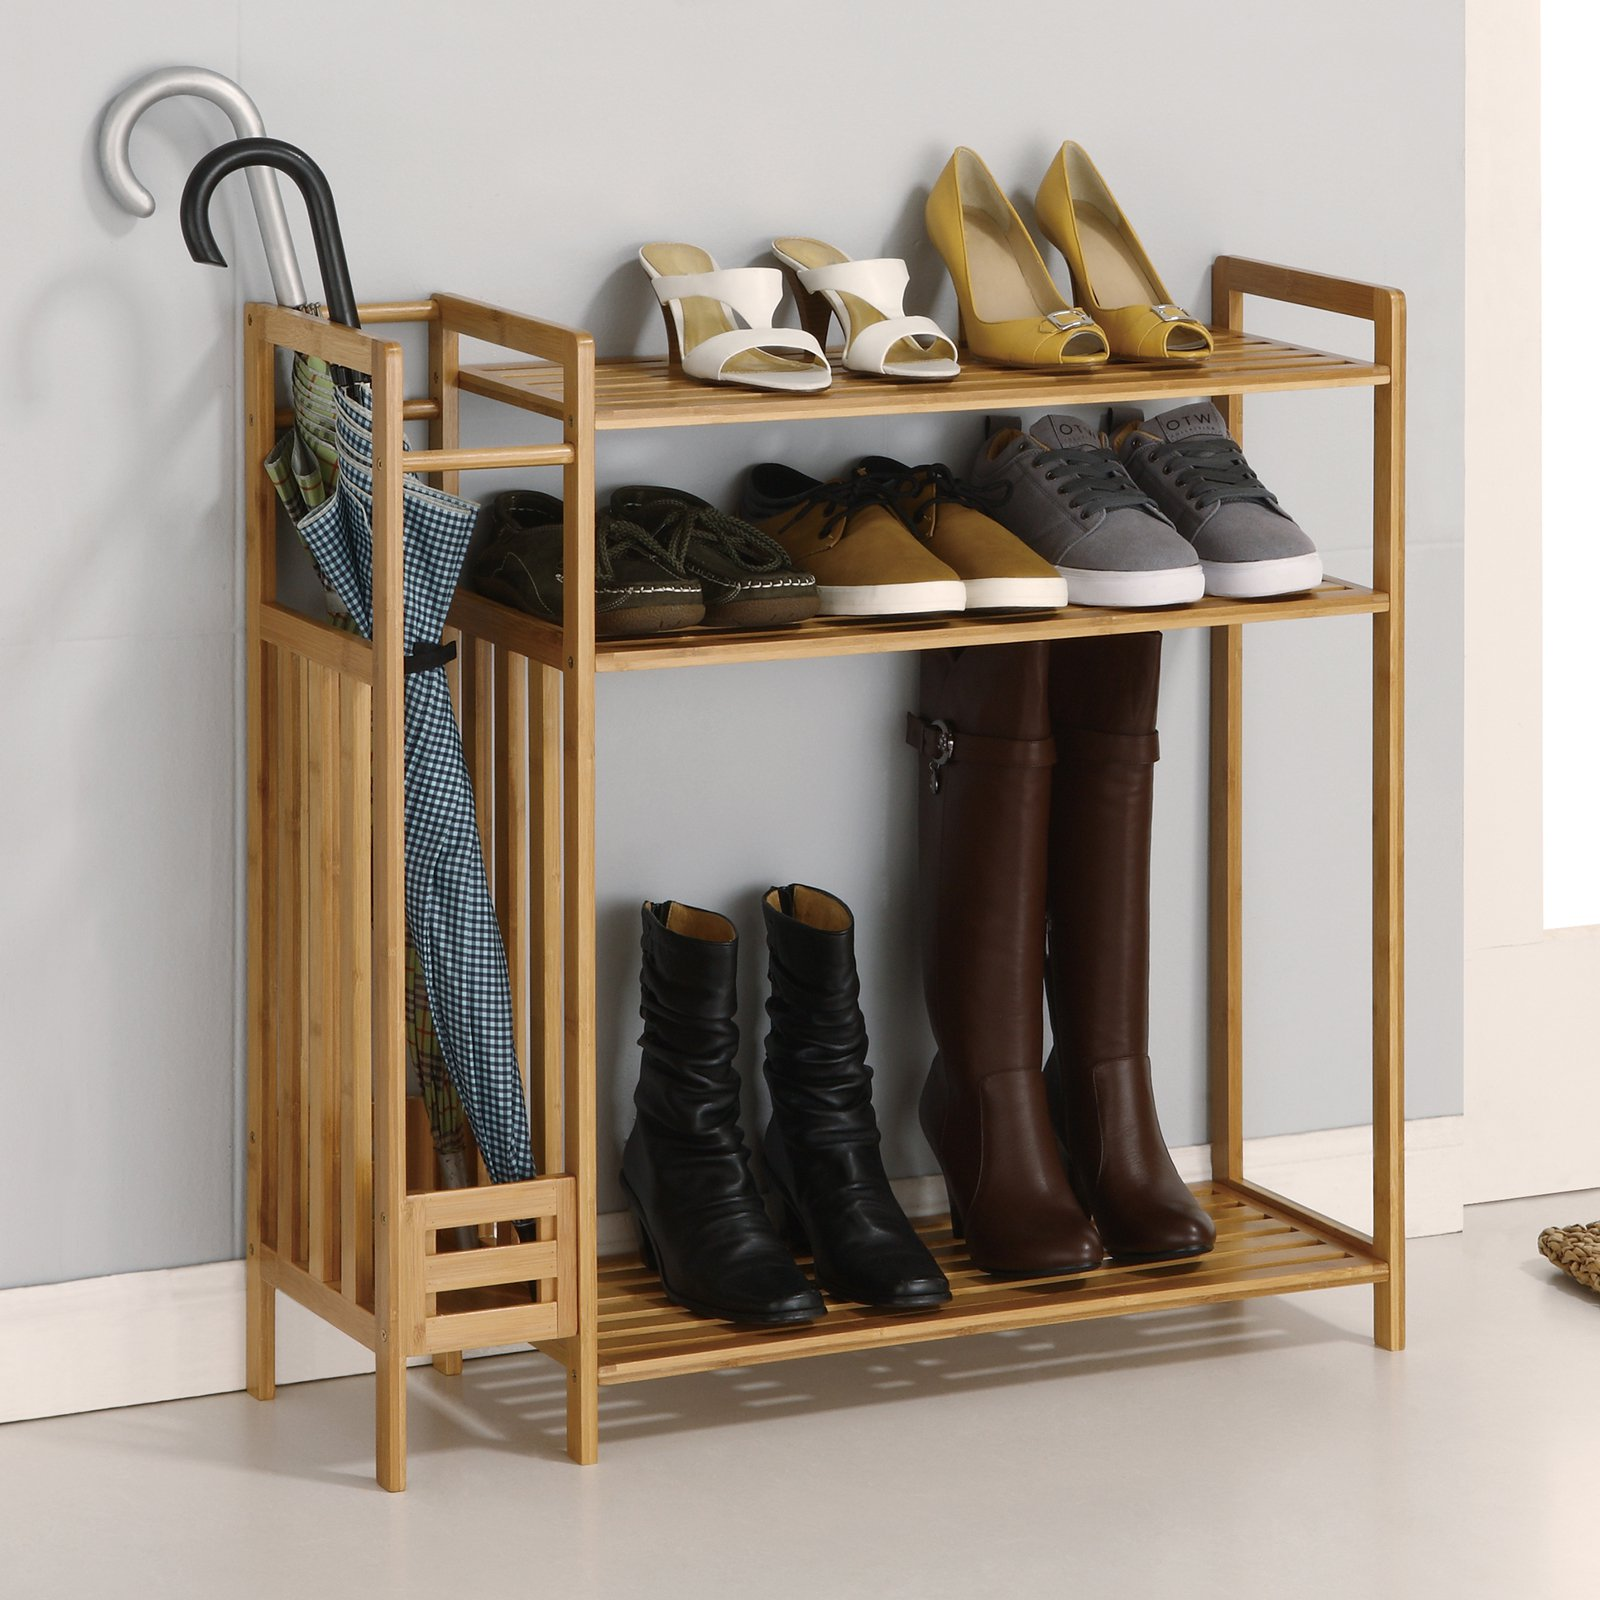 Storage Shoe Rack w. Umbrella Stand